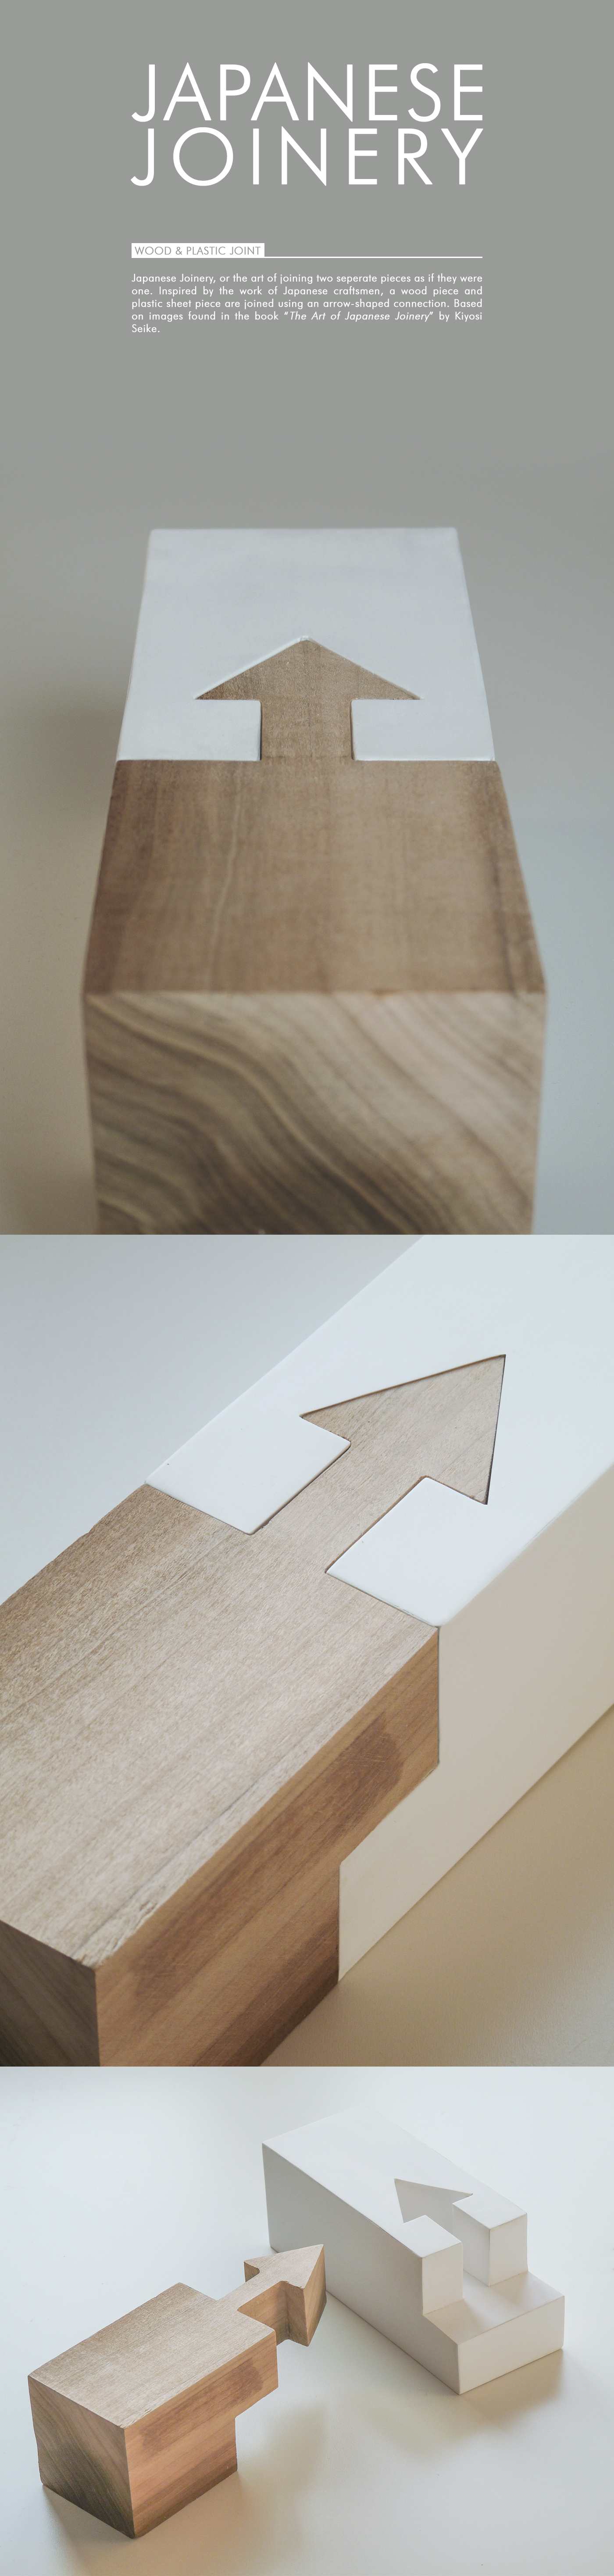 Arrow Connection // Japanese Joinery on Behance